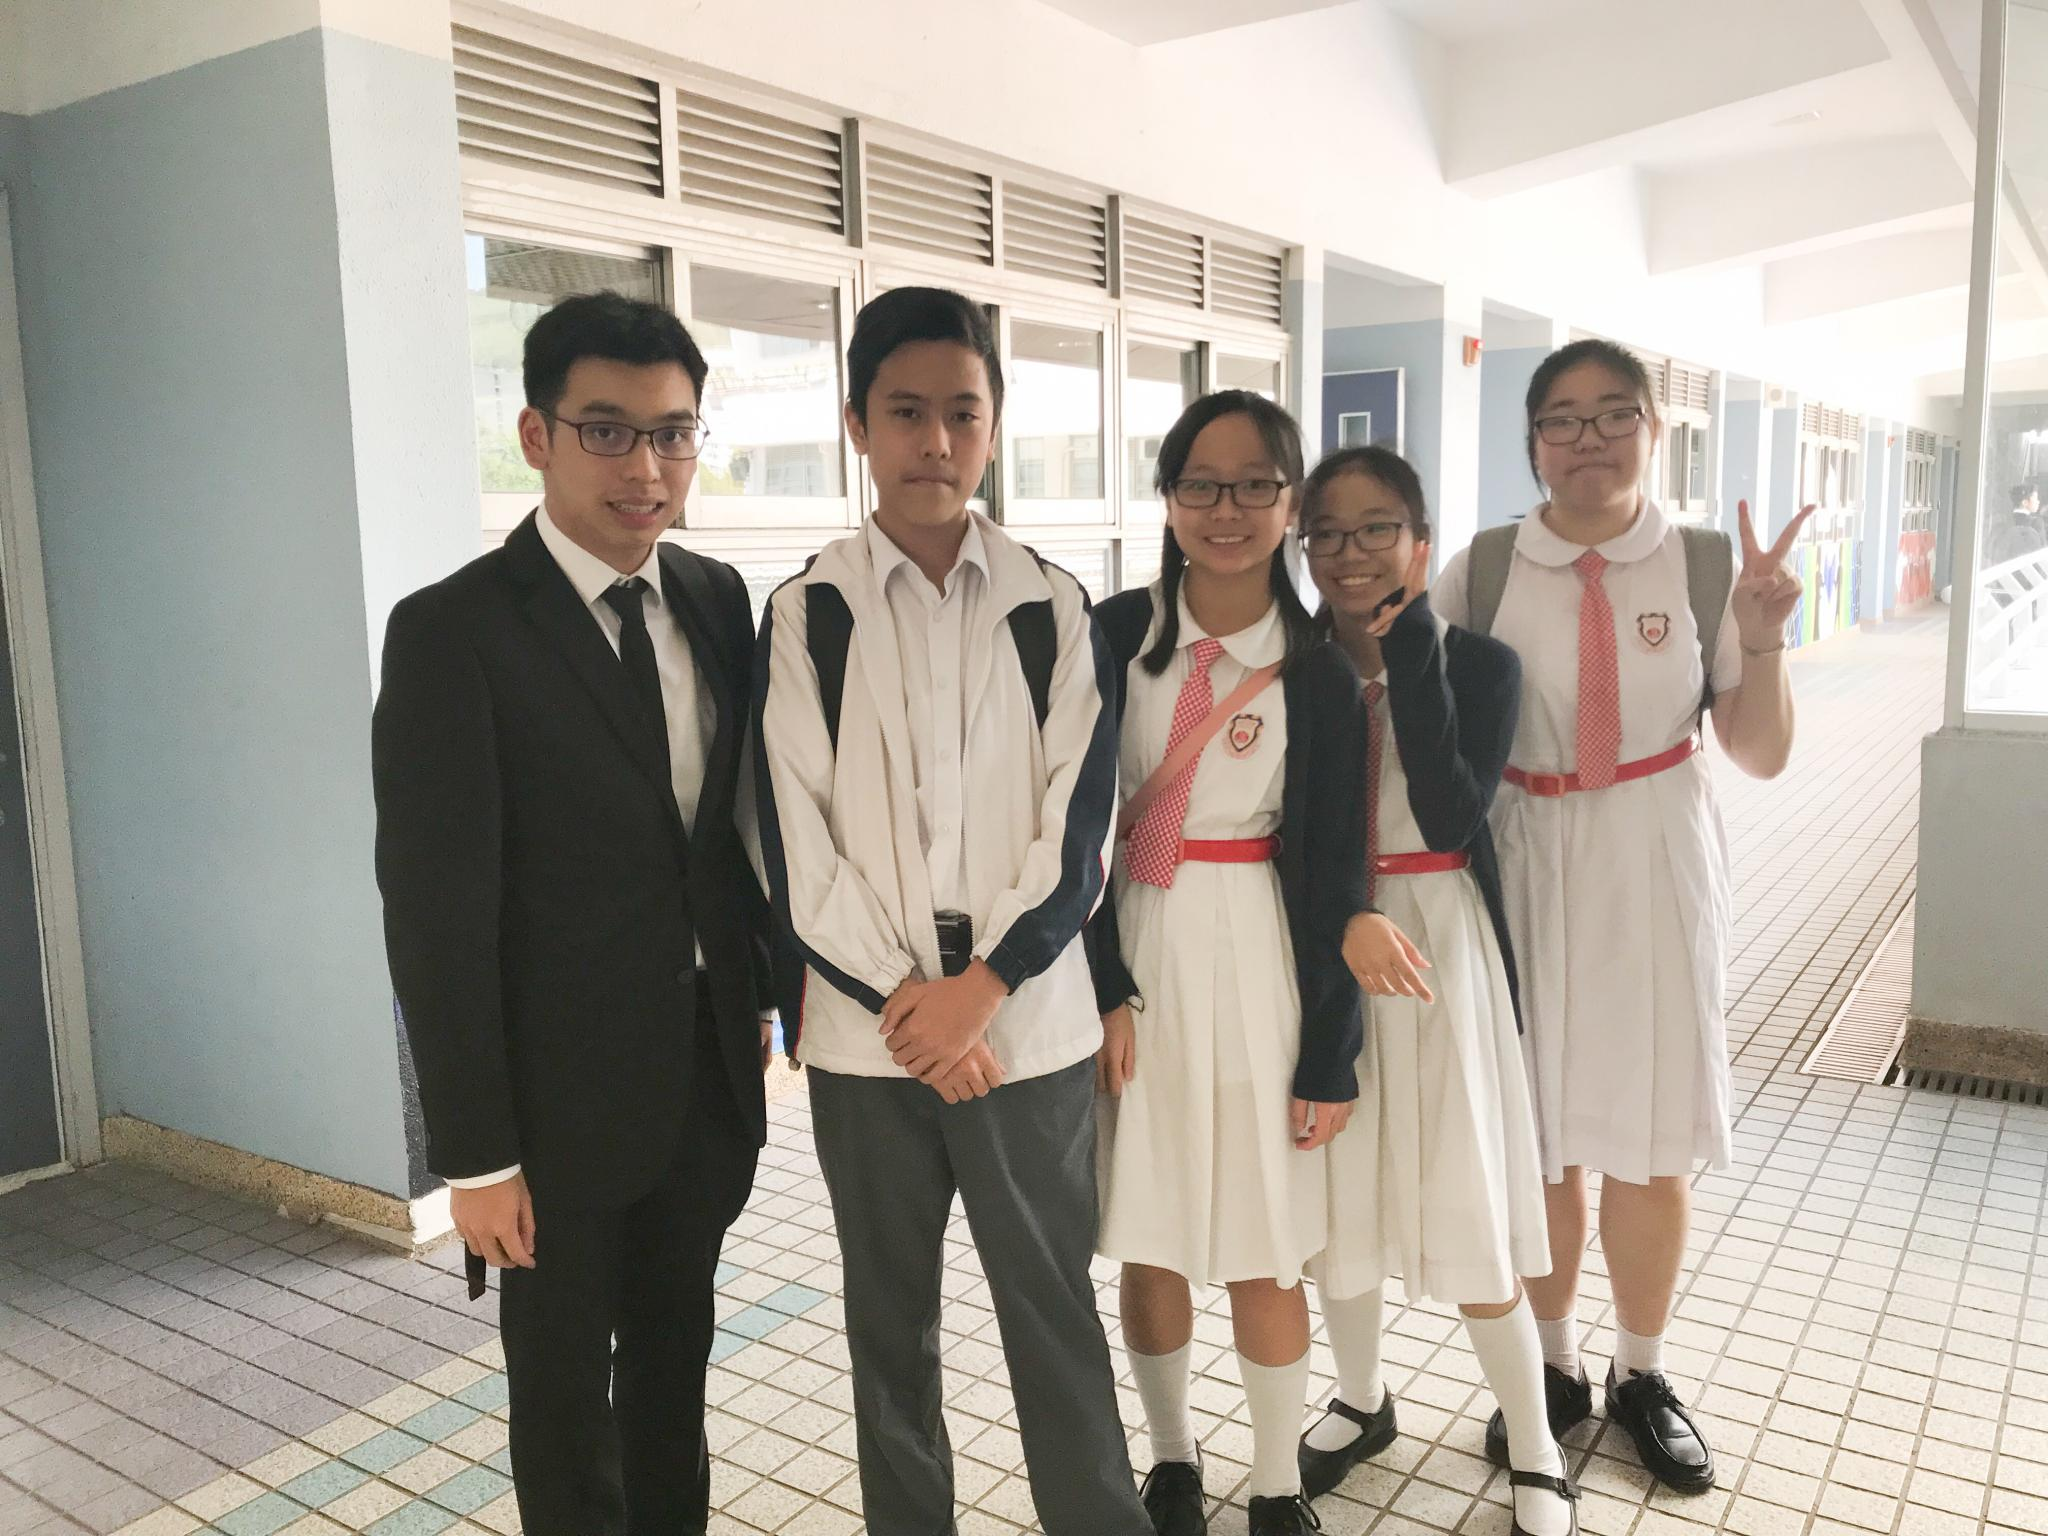 Students took a photo with their tutor.